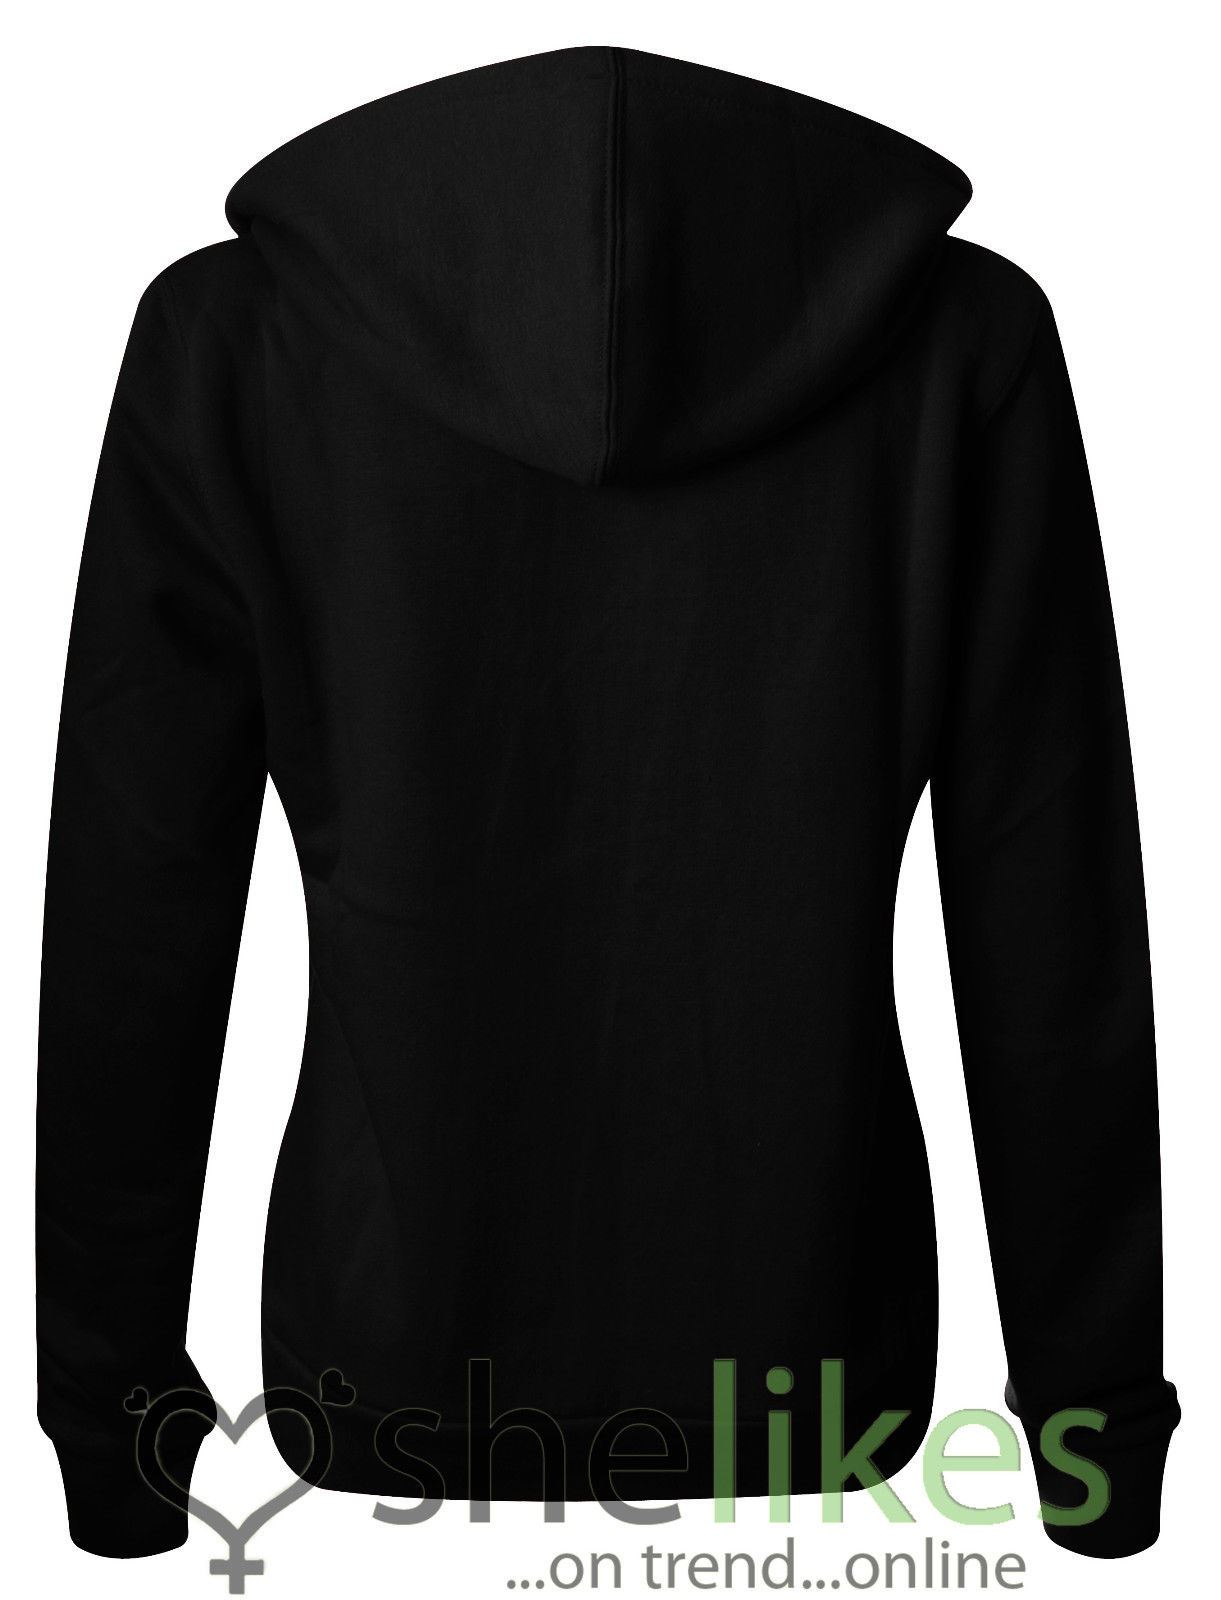 NEW-LADIES-WOMENS-PLUS-SIZE-FRONT-ZIP-HOODED-SWEATSHIRT-PLAIN-HOODIE-JACKET-TOP thumbnail 3